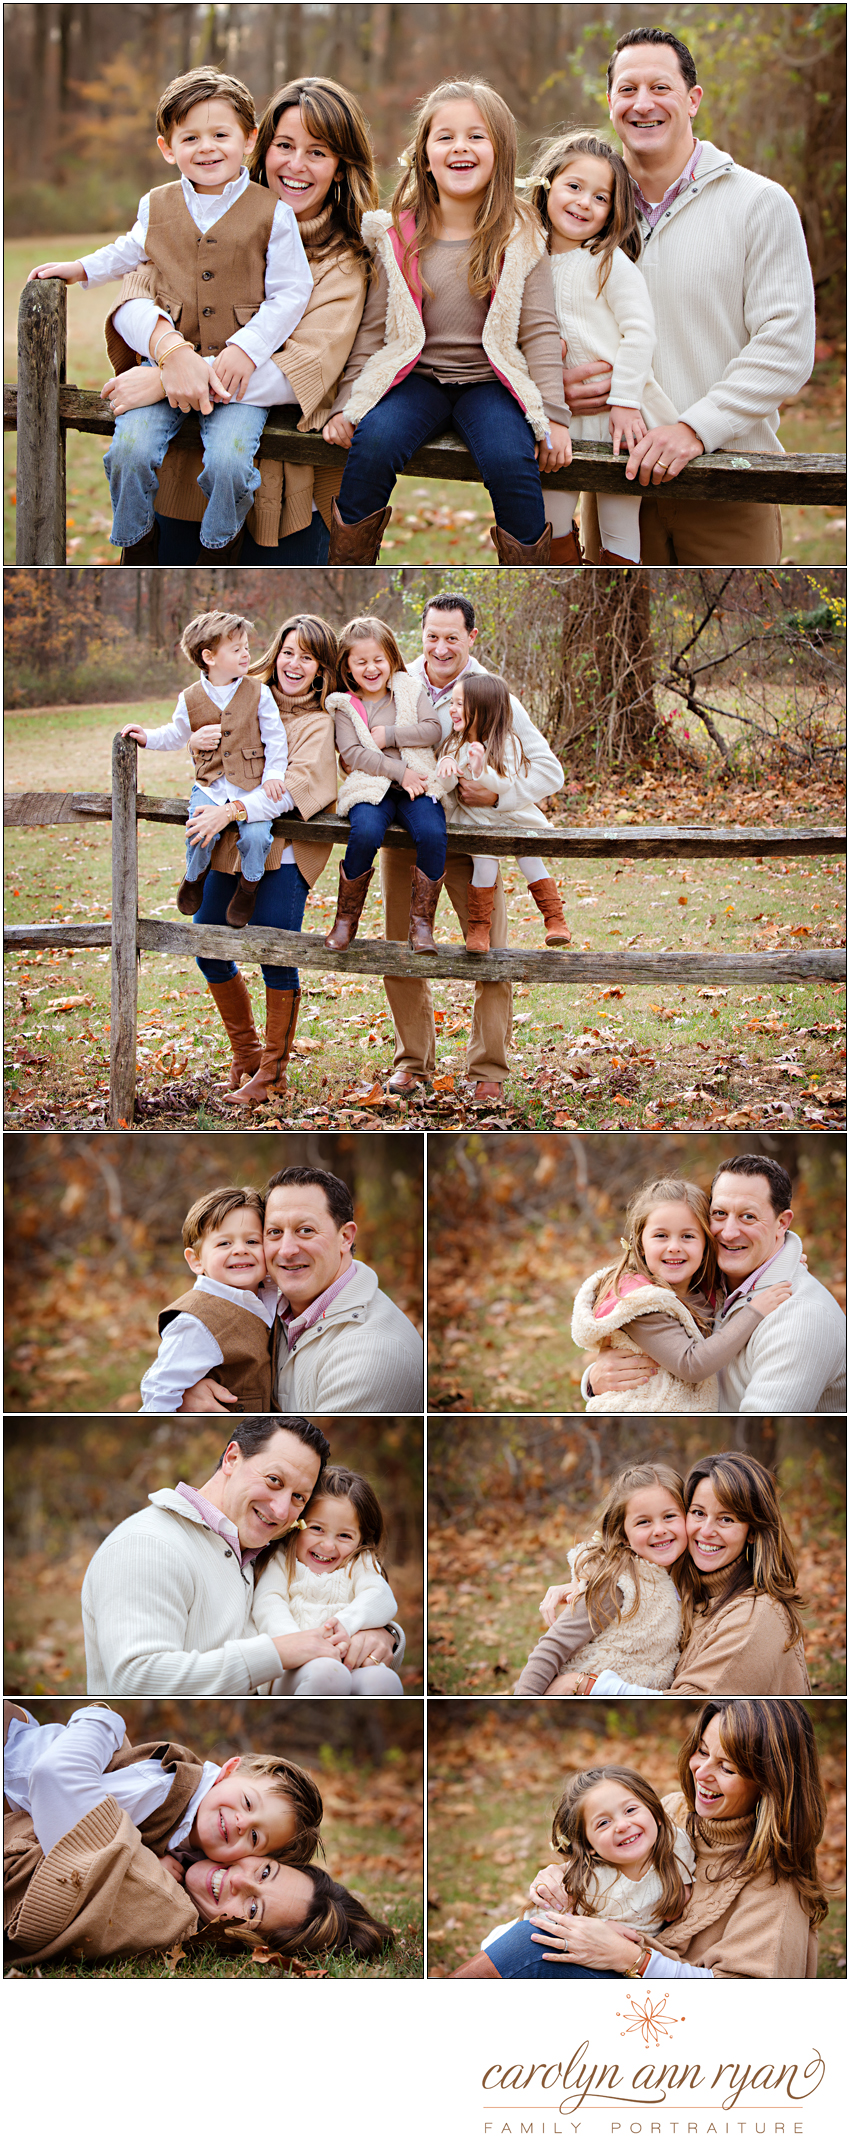 Charlotte, NC Family Photographer Carolyn Ann Ryan photographs playful and fun family portrait sessions